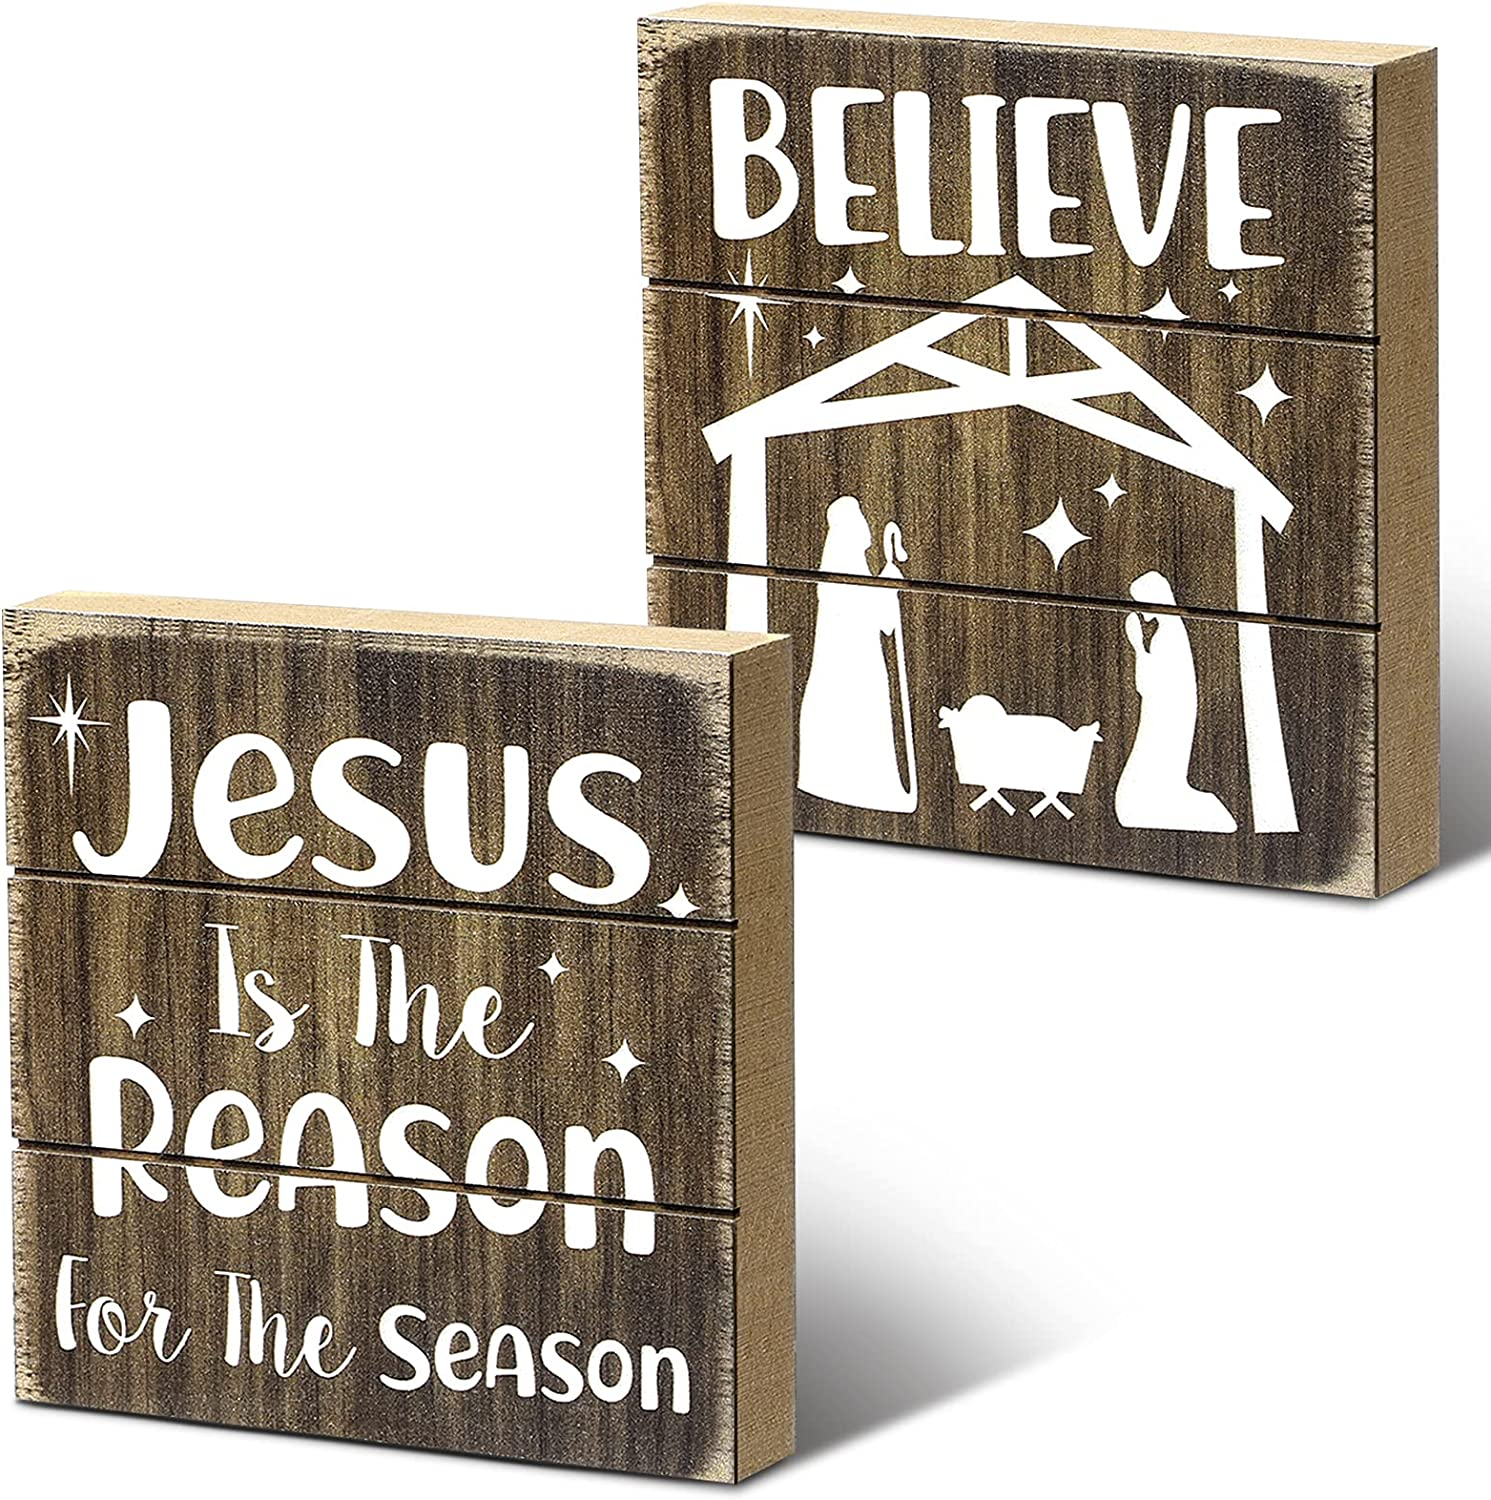 Rustic Christmas Sign Jesus is The Reason for The Season Decor Sign Xmas Believe Sign Nativity Scene Decorations Rustic Farmhouse Table Centerpiece for Home Wall Window Tiered Tray Holiday Decor